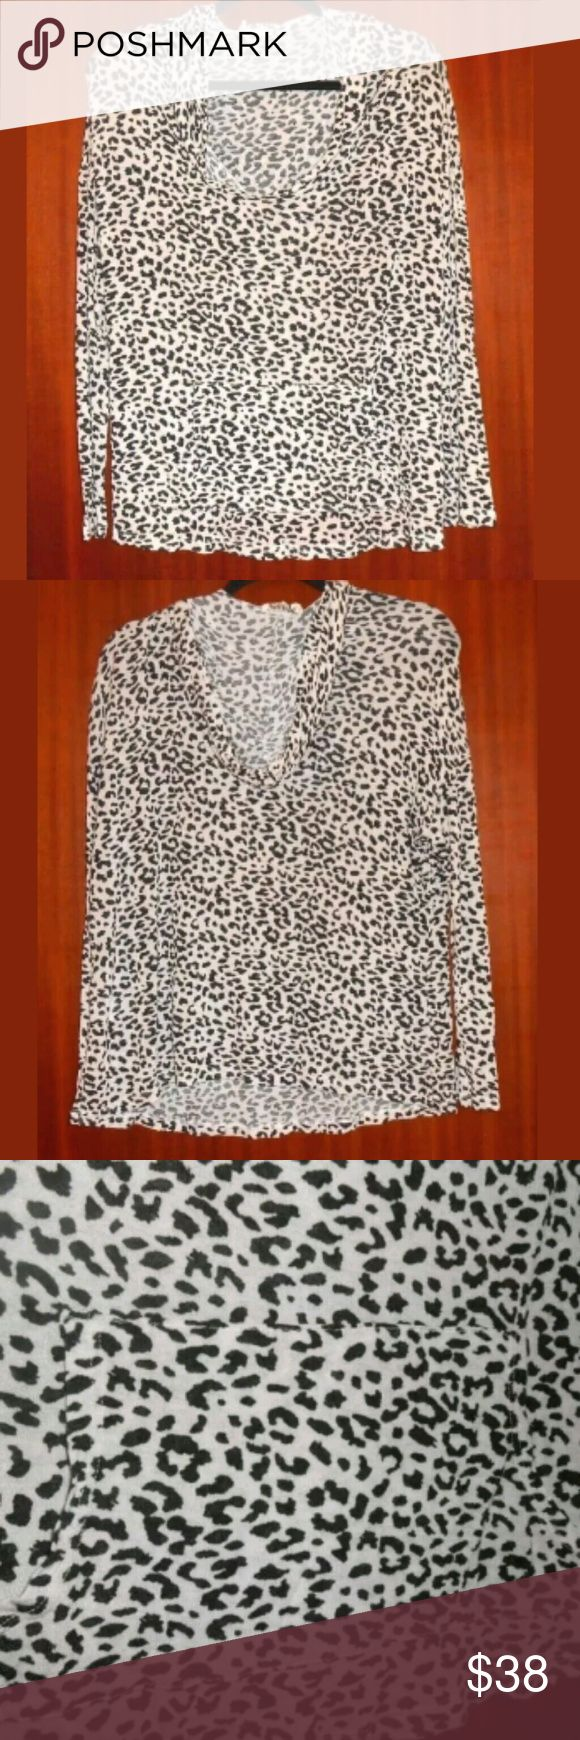 """Mumu Mellow Beige & Black Long Sleeve Thin Hoodie A cool top in very good condition. Great for any casual day or used as loungewear.   Size small, baggy fit. Front pocket at stomach area.   18"""" armpit to armpit  26"""" shoulder seam to hem mumu mellow  Tops Sweatshirts & Hoodies"""